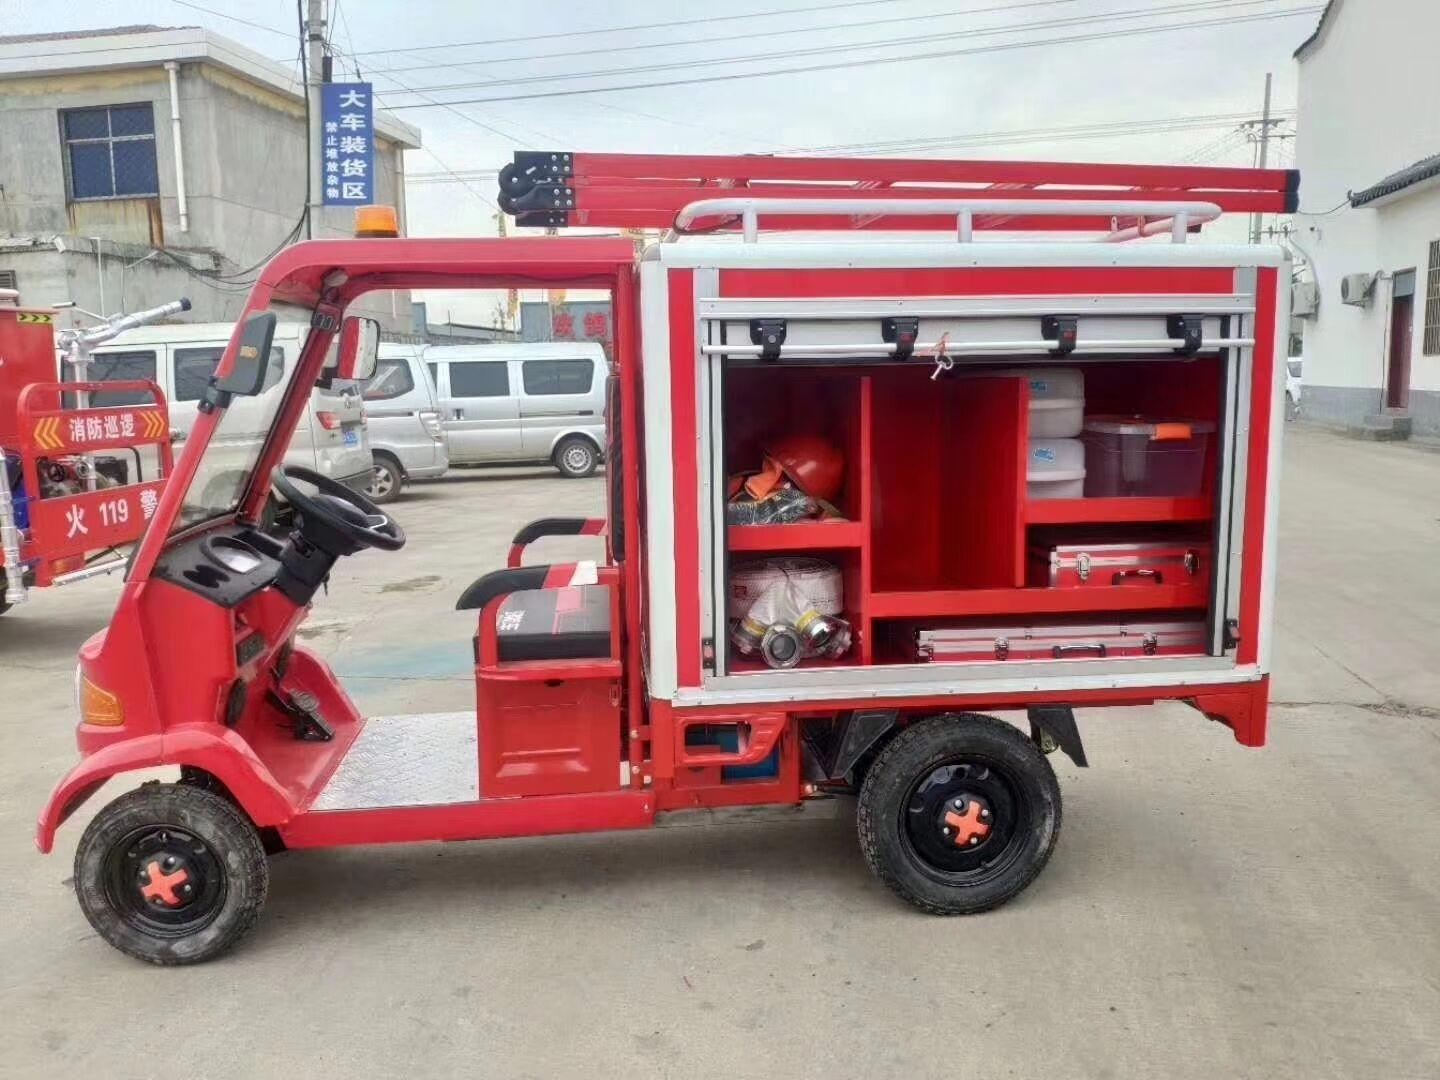 Emergency Truck Roll up Door Cargo Slide Door Blind